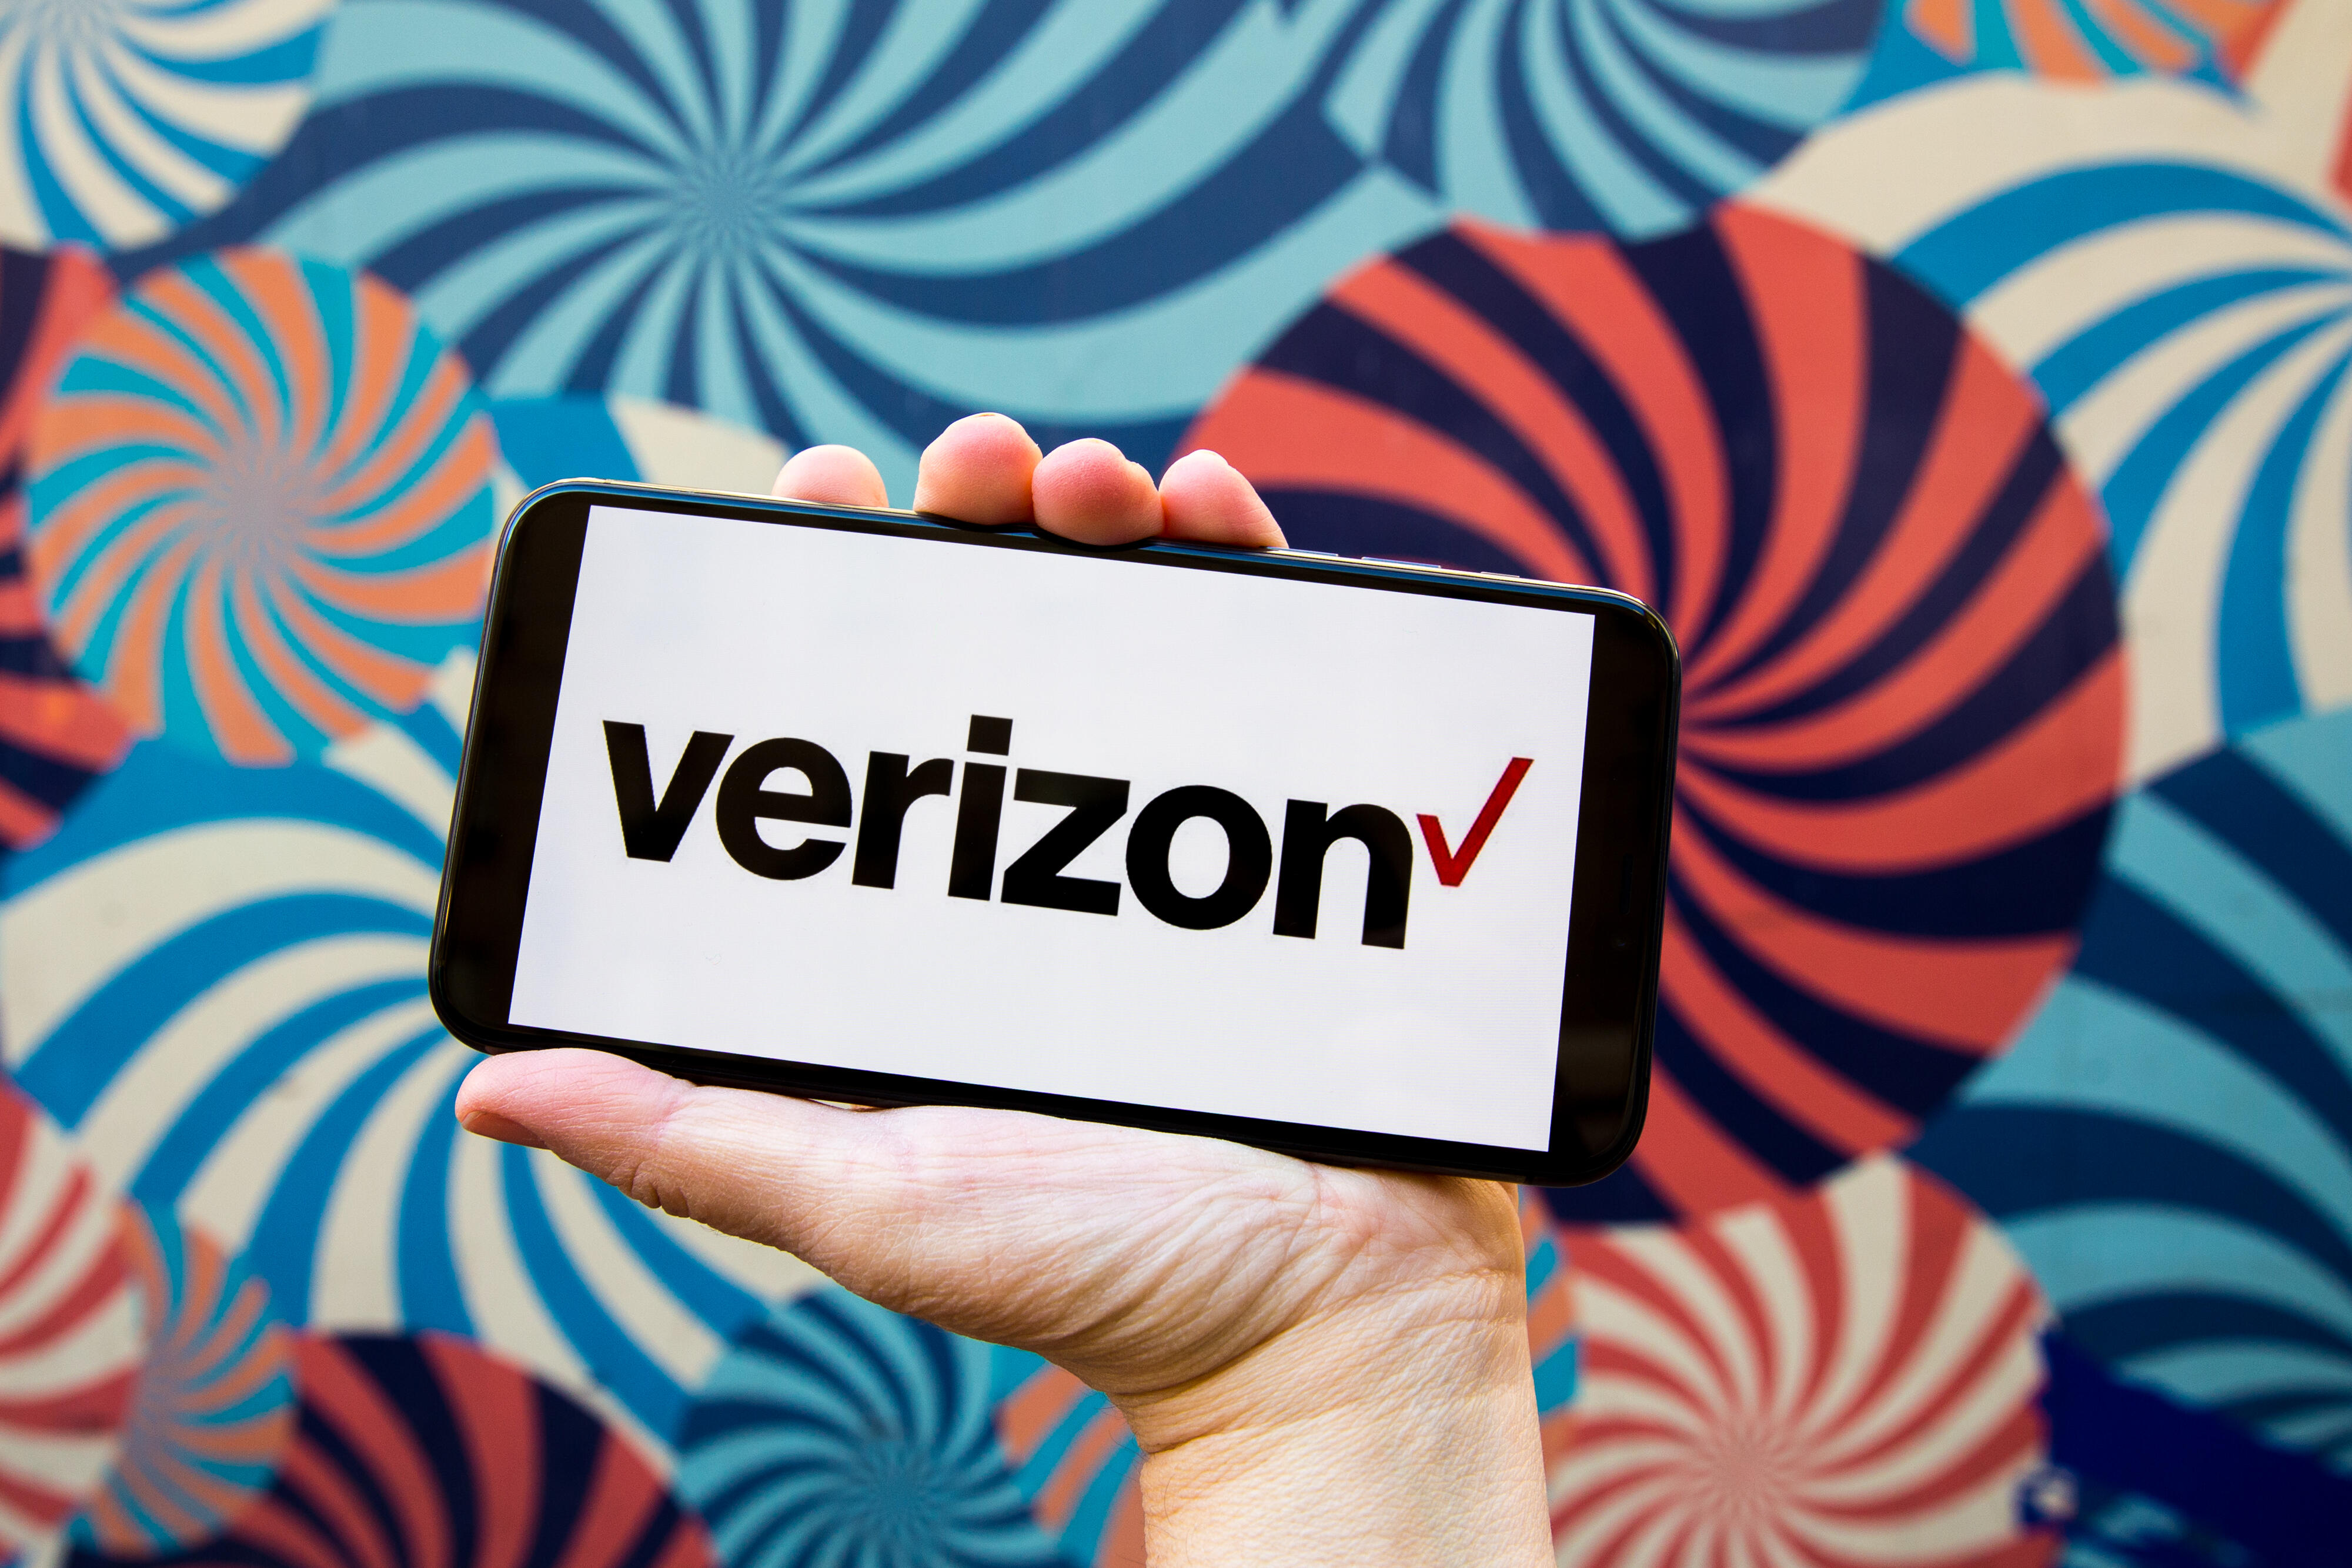 , Verizon is selling its media group to Apollo for $5 billion – Source CNET Tech, iBSC Technologies - learning management services, LMS, Wordpress, CMS, Moodle, IT, Email, Web Hosting, Cloud Server,Cloud Computing